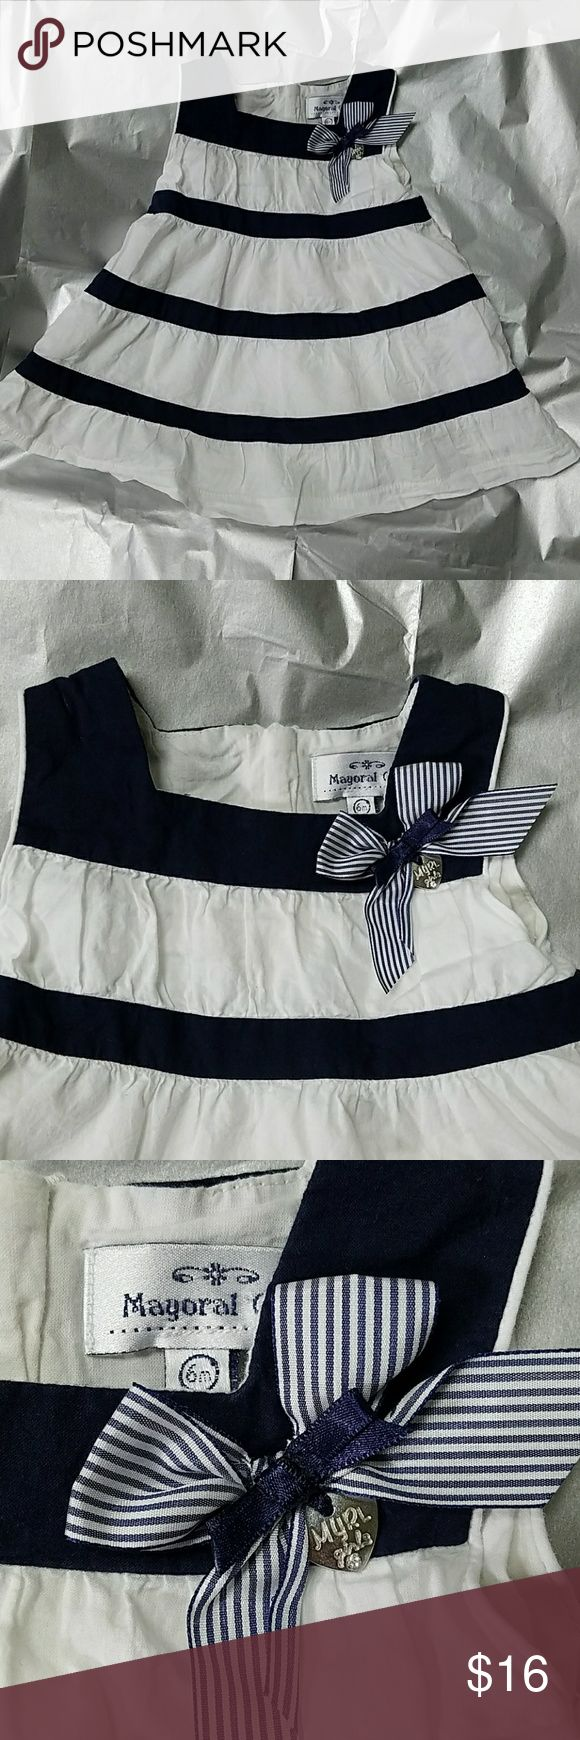 Mayoral Chic white and blue sundress How adorable is this? What a great way to start the summer with this fully lined 100% cotton sundress made by Mayoral Chic. Perfect for barbecues and summer parties!  Excellent condition, no tears, stains, smoke-free and pet-free home mayoral chic Dresses